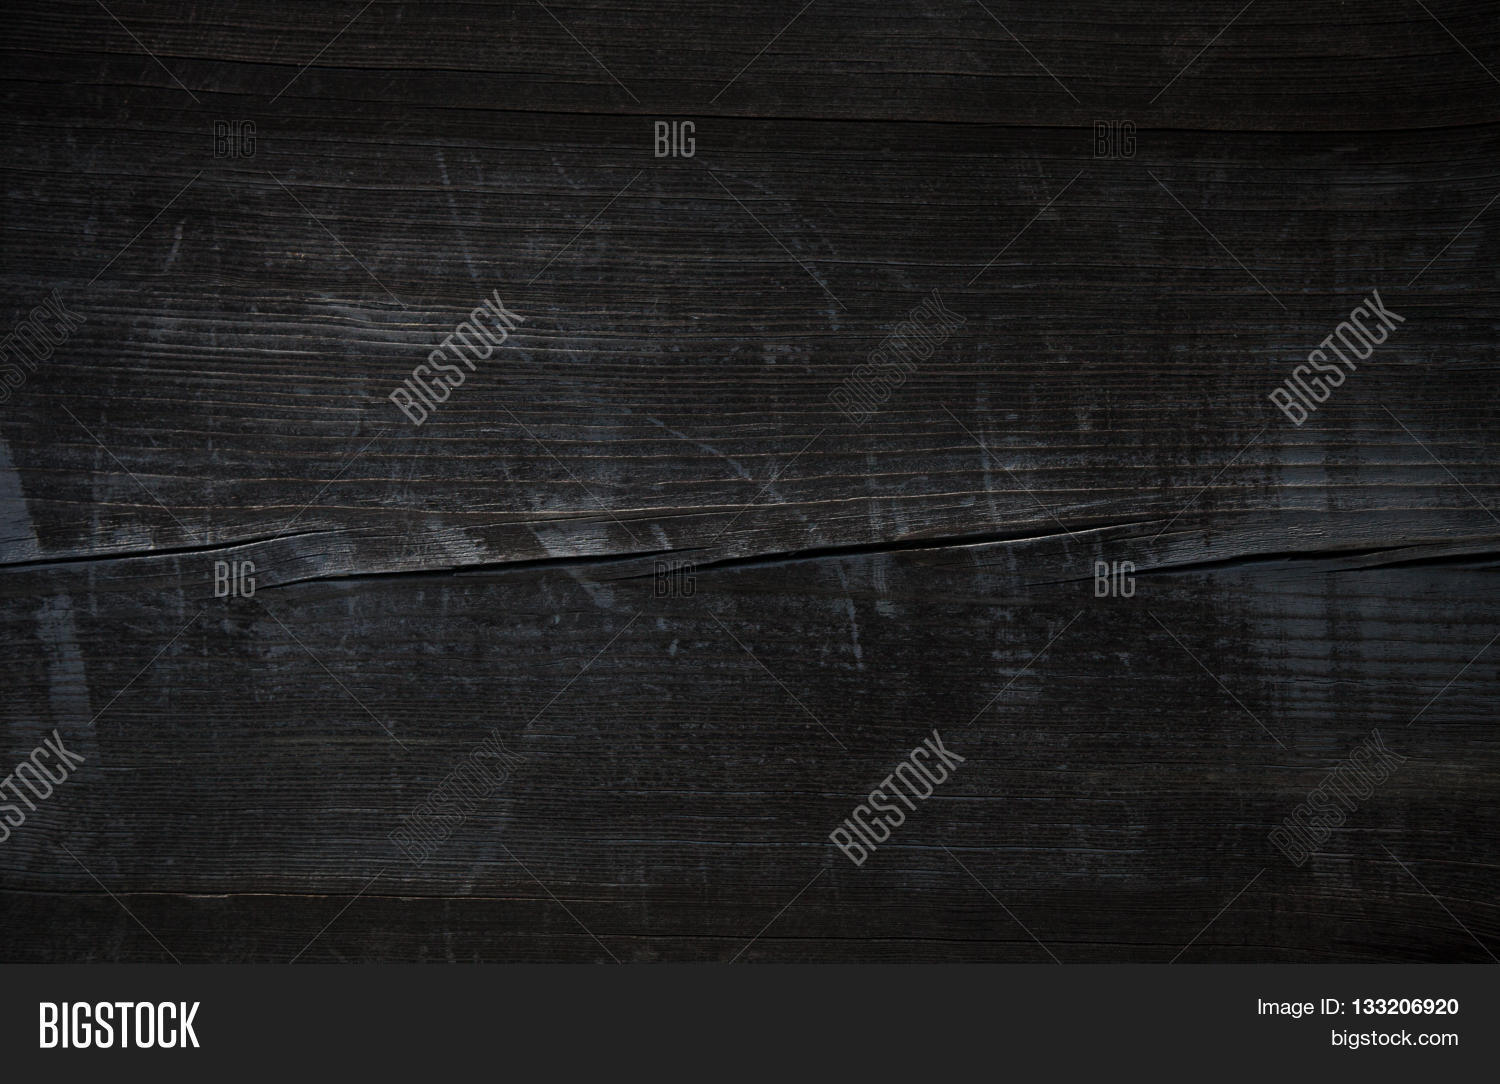 Free wood table background Images, Pictures, and Royalty ...